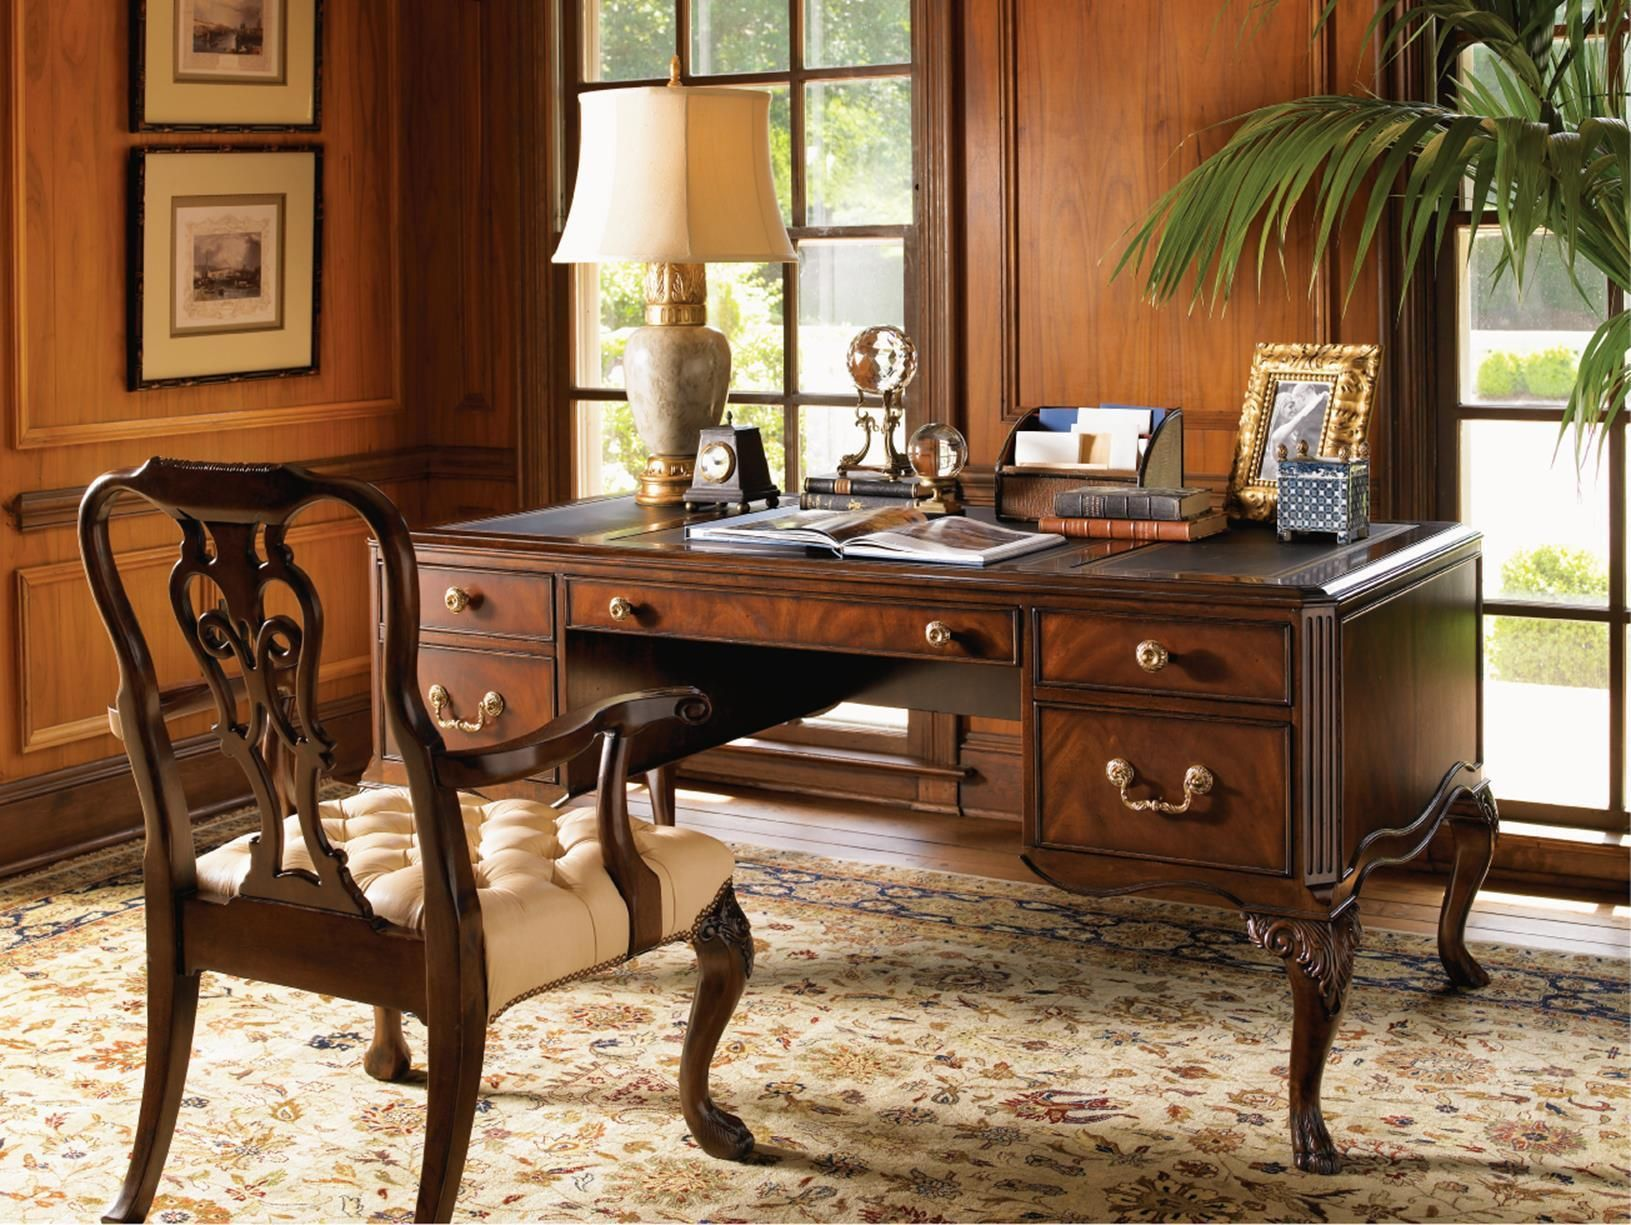 Vintage And Rustic Home Office Desk 51 Craft And Home Ideas In 2020 Vintage Home Offices Rustic Home Offices Vintage Office Decor